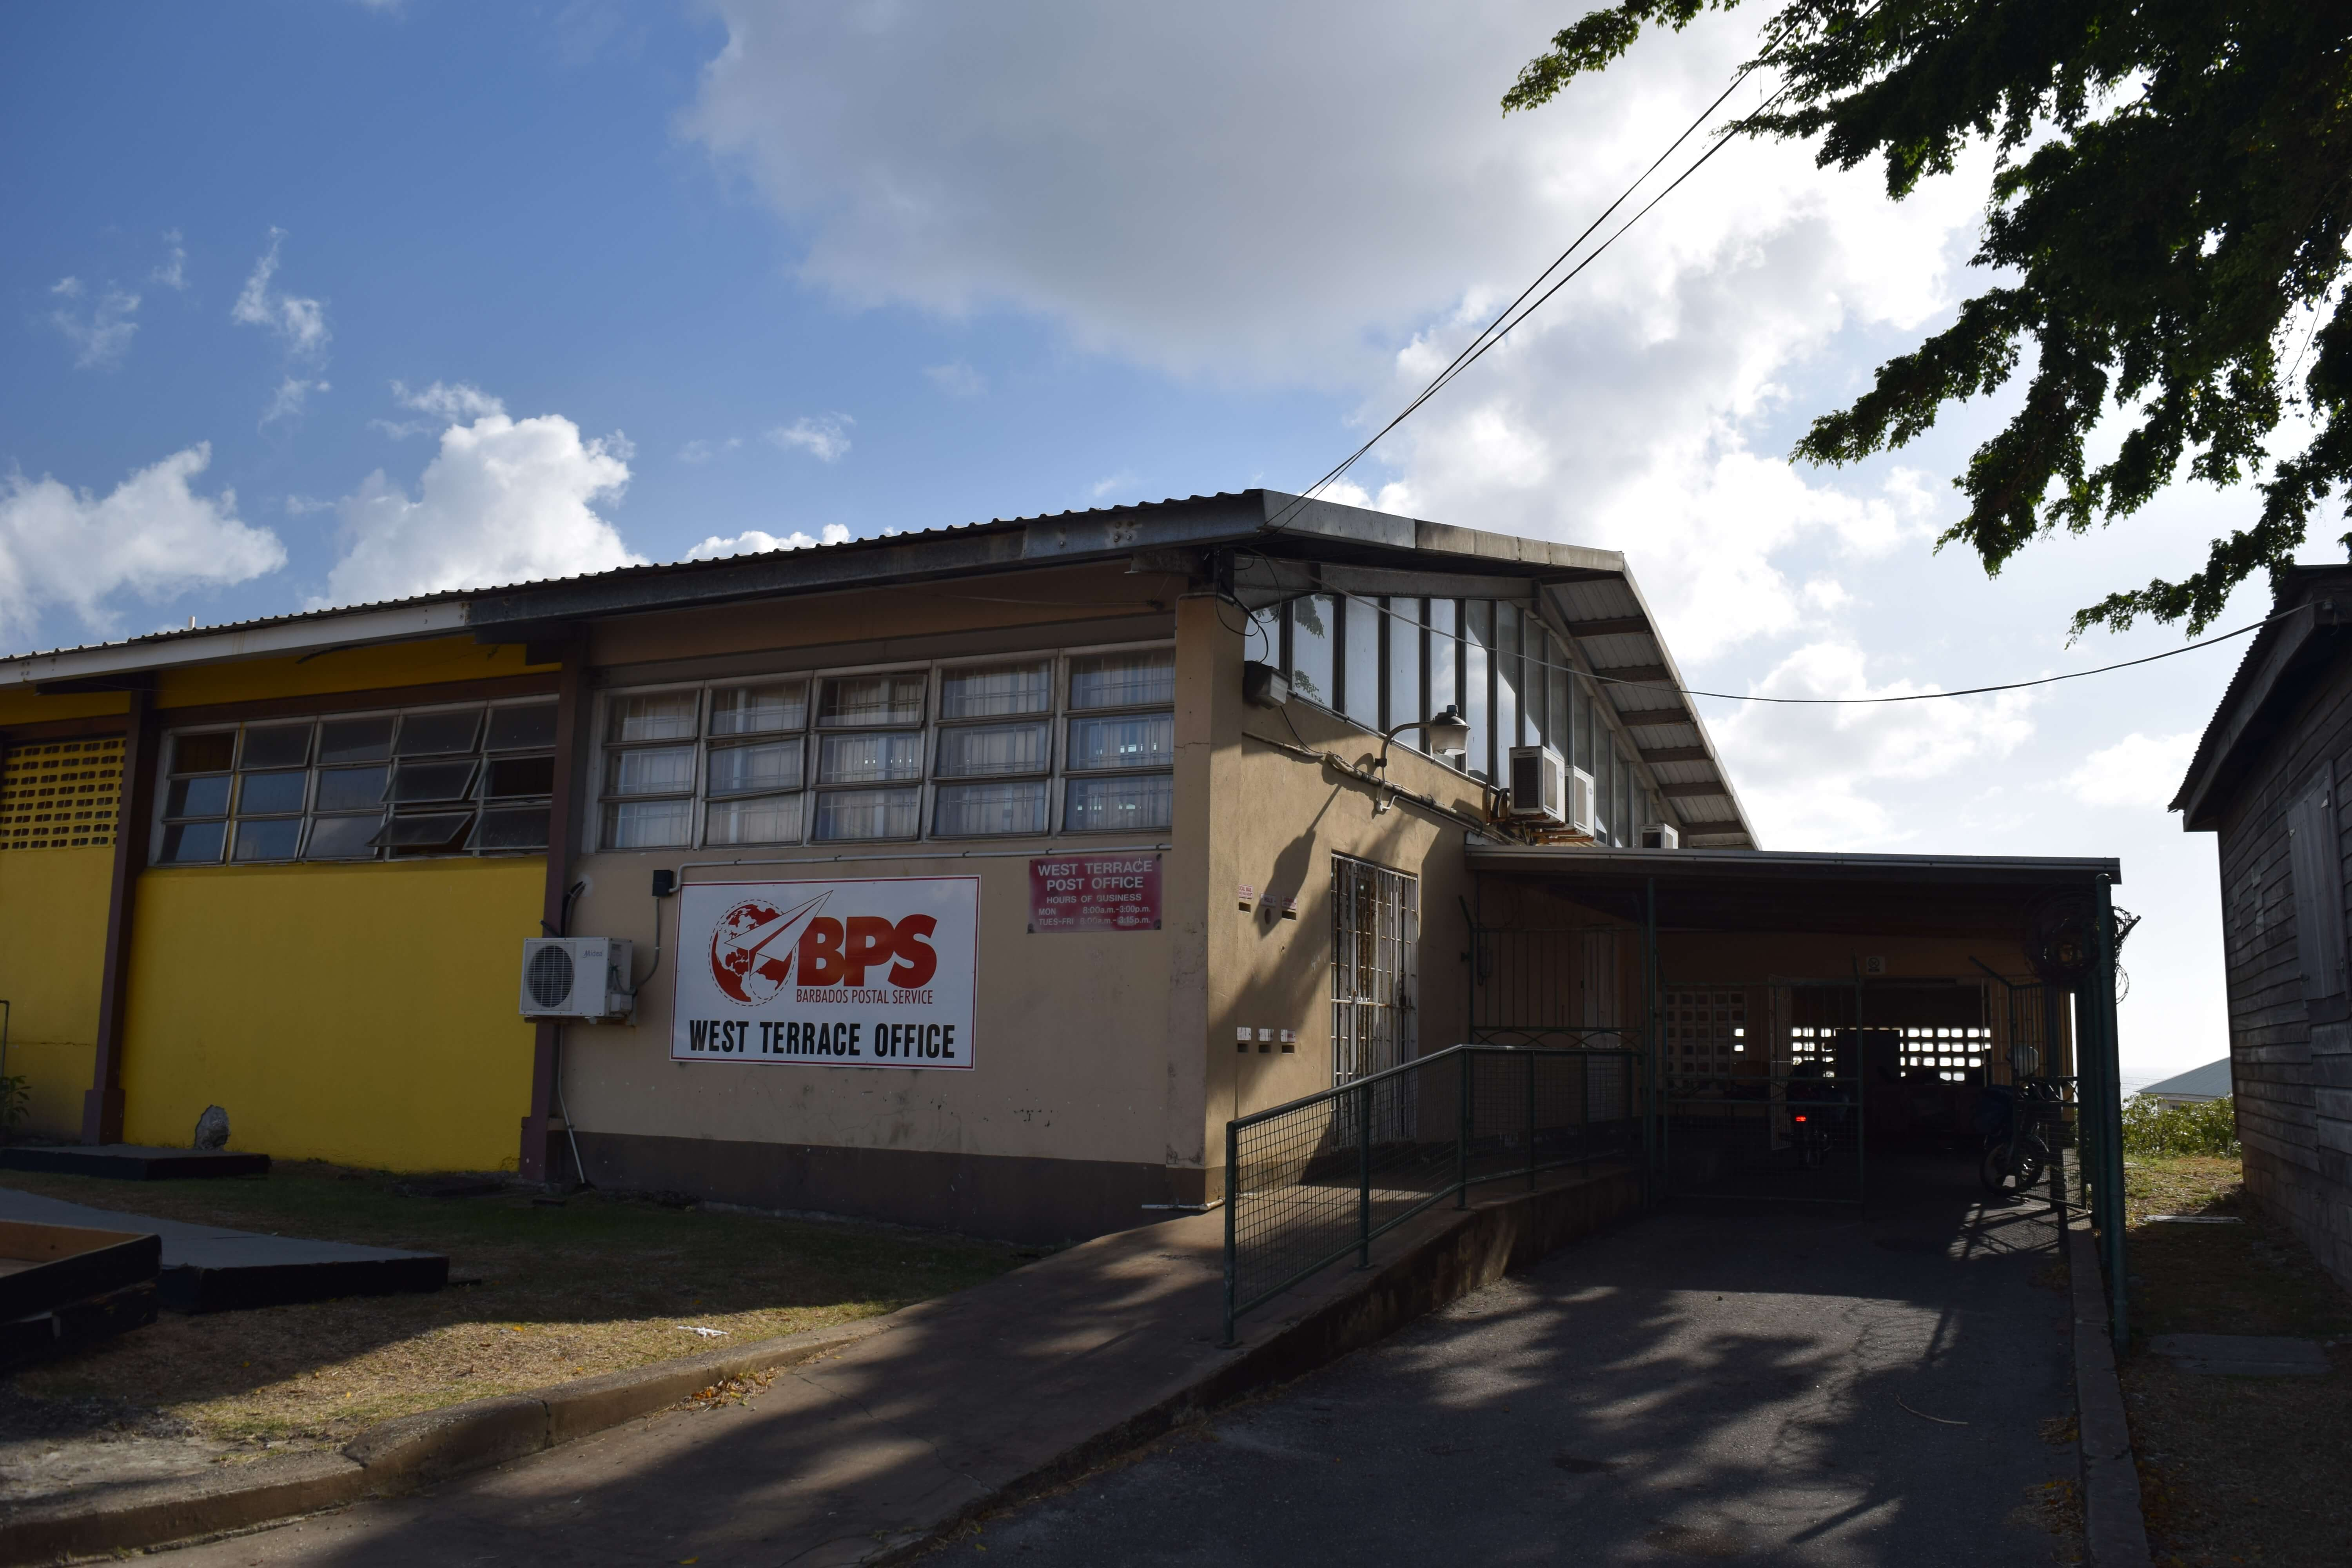 West Terrace Post Office, St James, Barbados closes for good